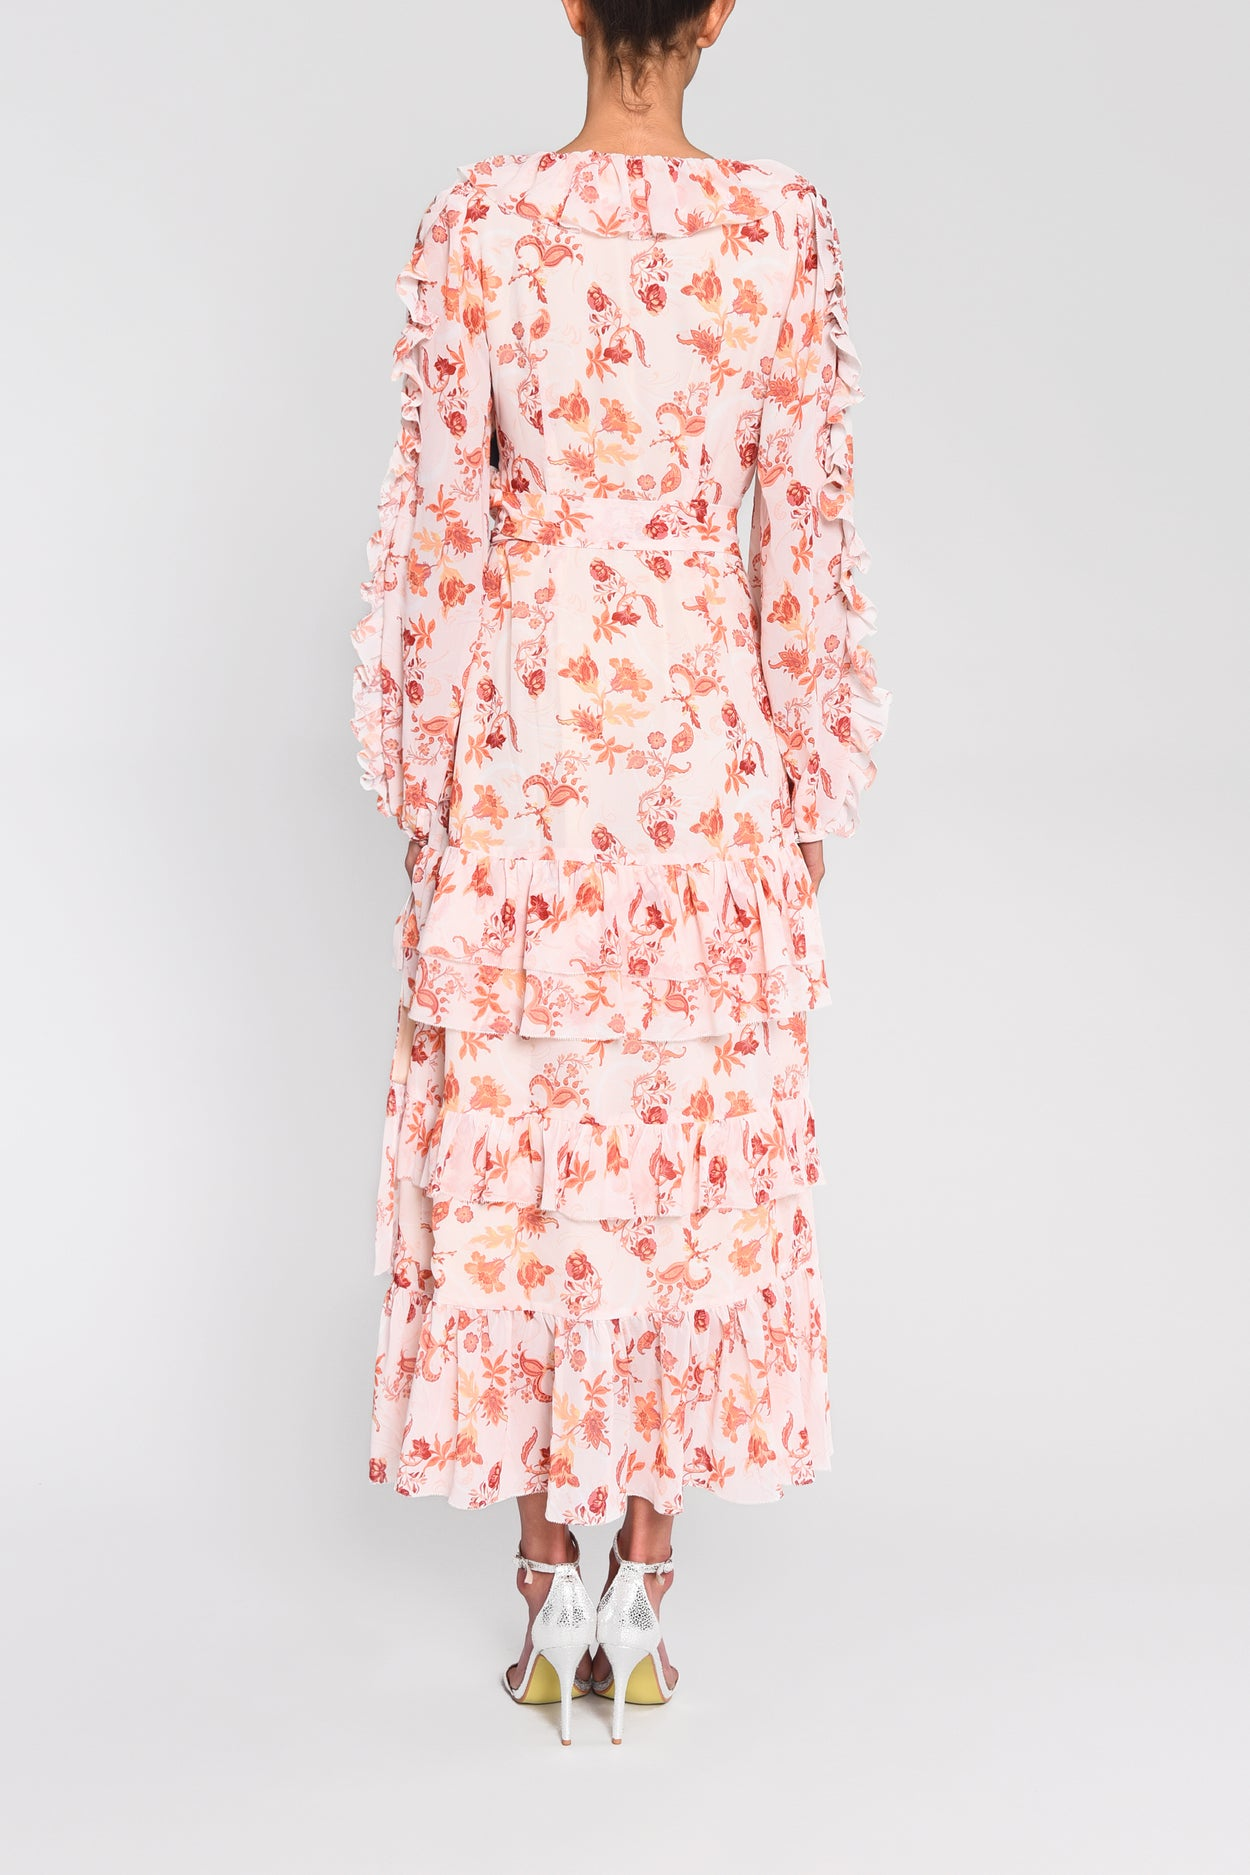 True Decadence Peach Orange Floral Wrap Midi Dress